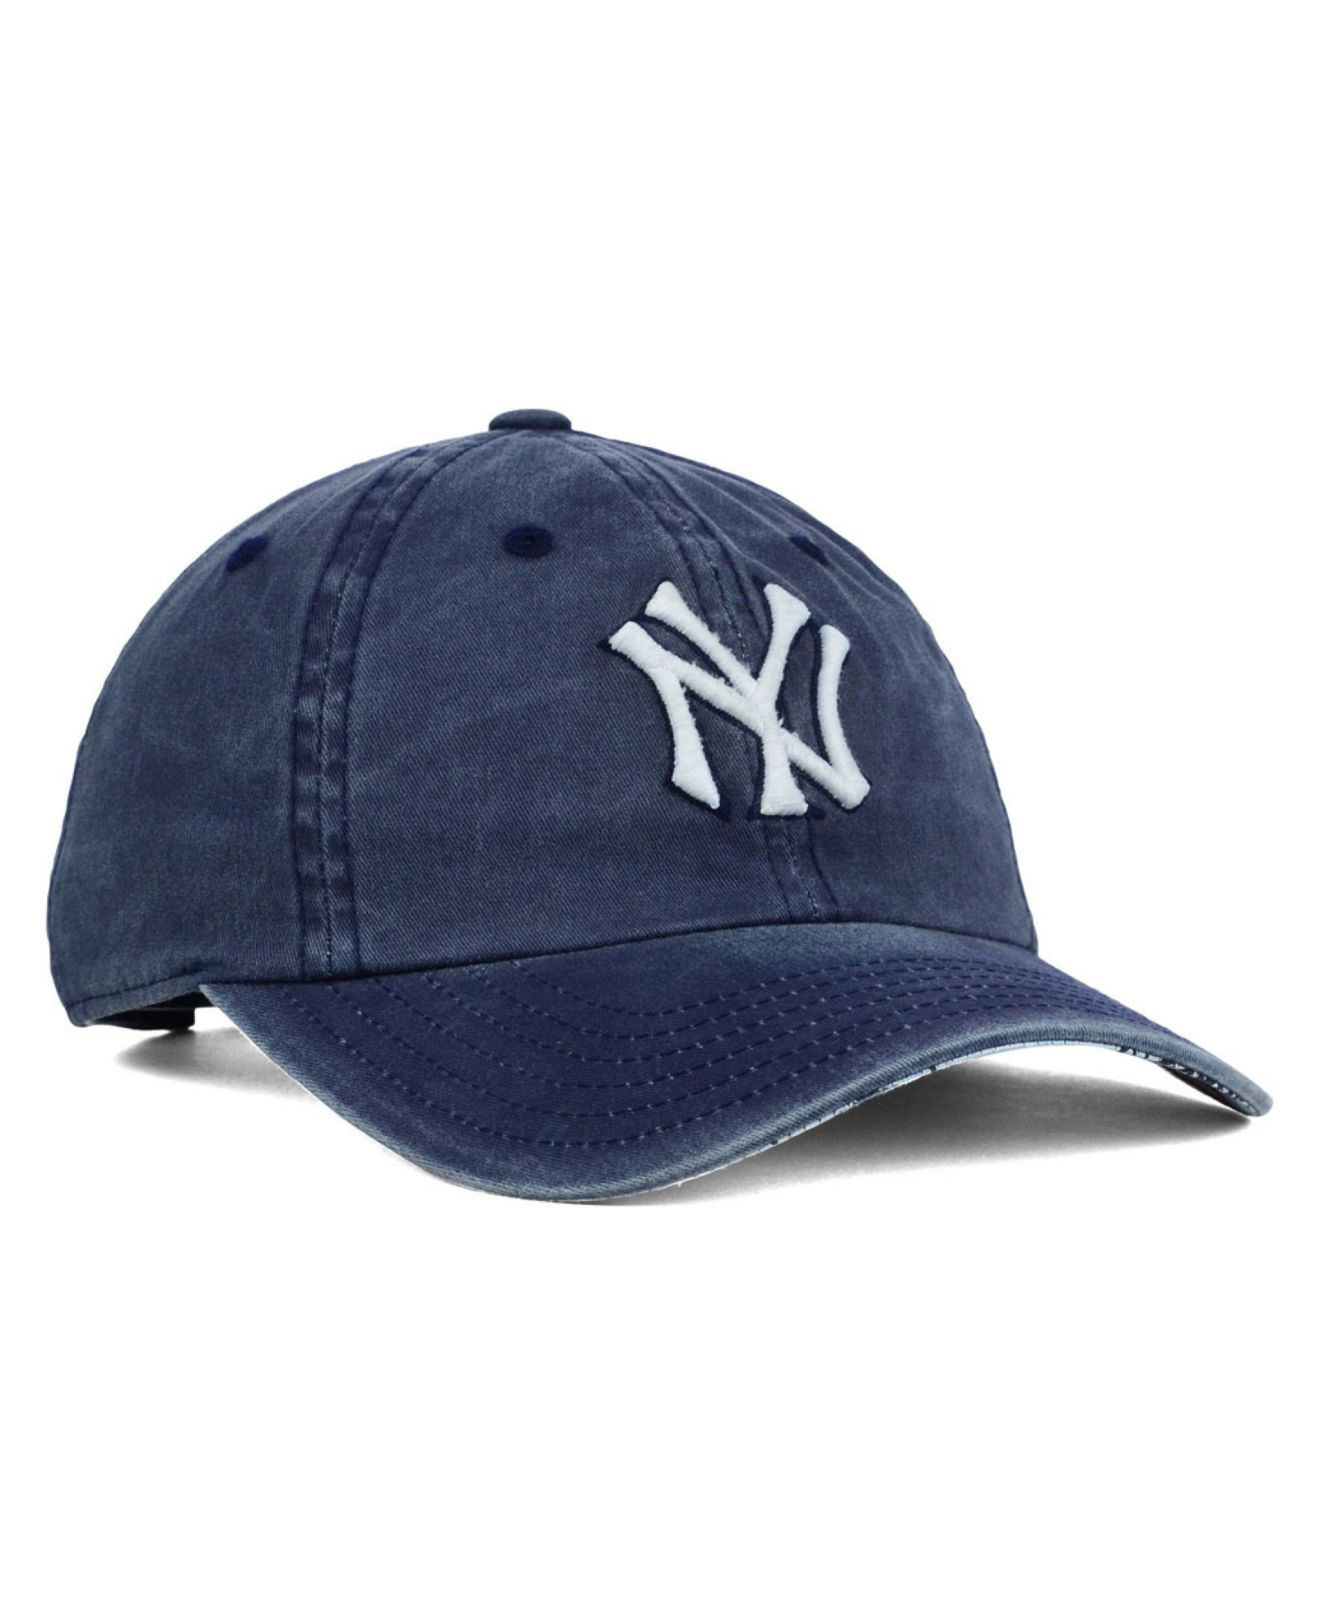 ed46b3bc81c Lyst - American Needle New York Yankees New Raglan Cap in Blue for Men